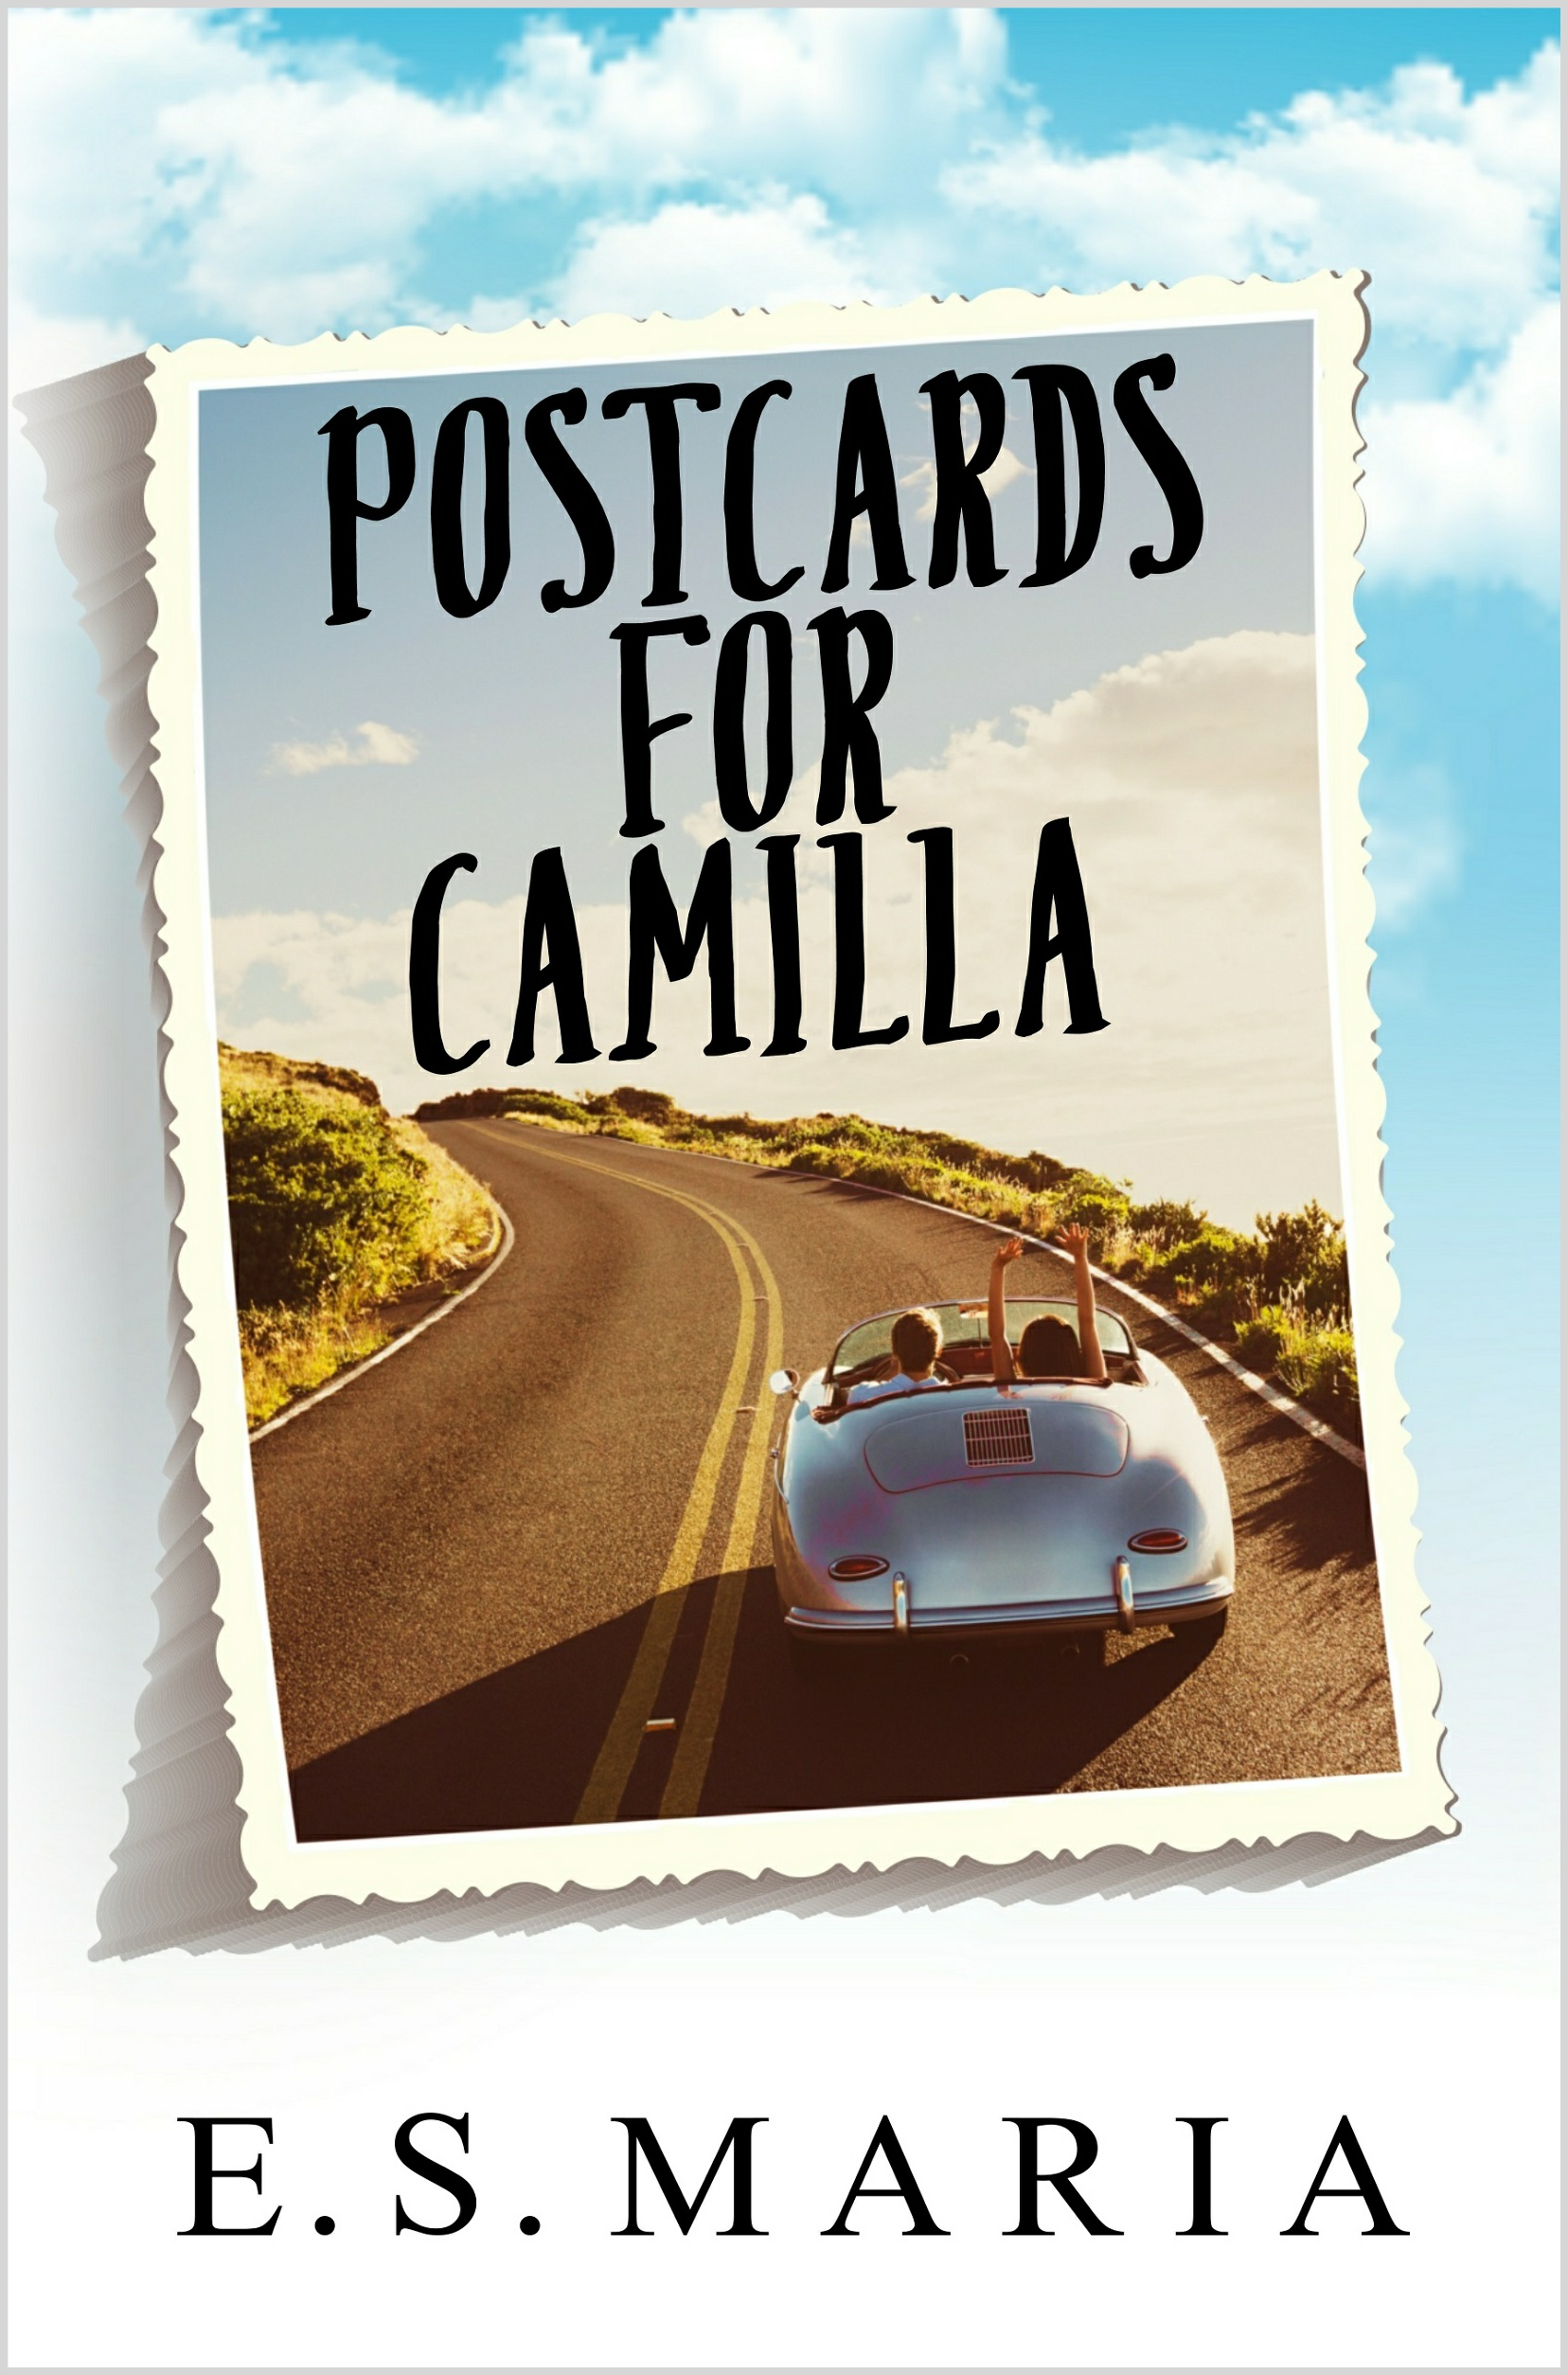 Postcards for Camilla